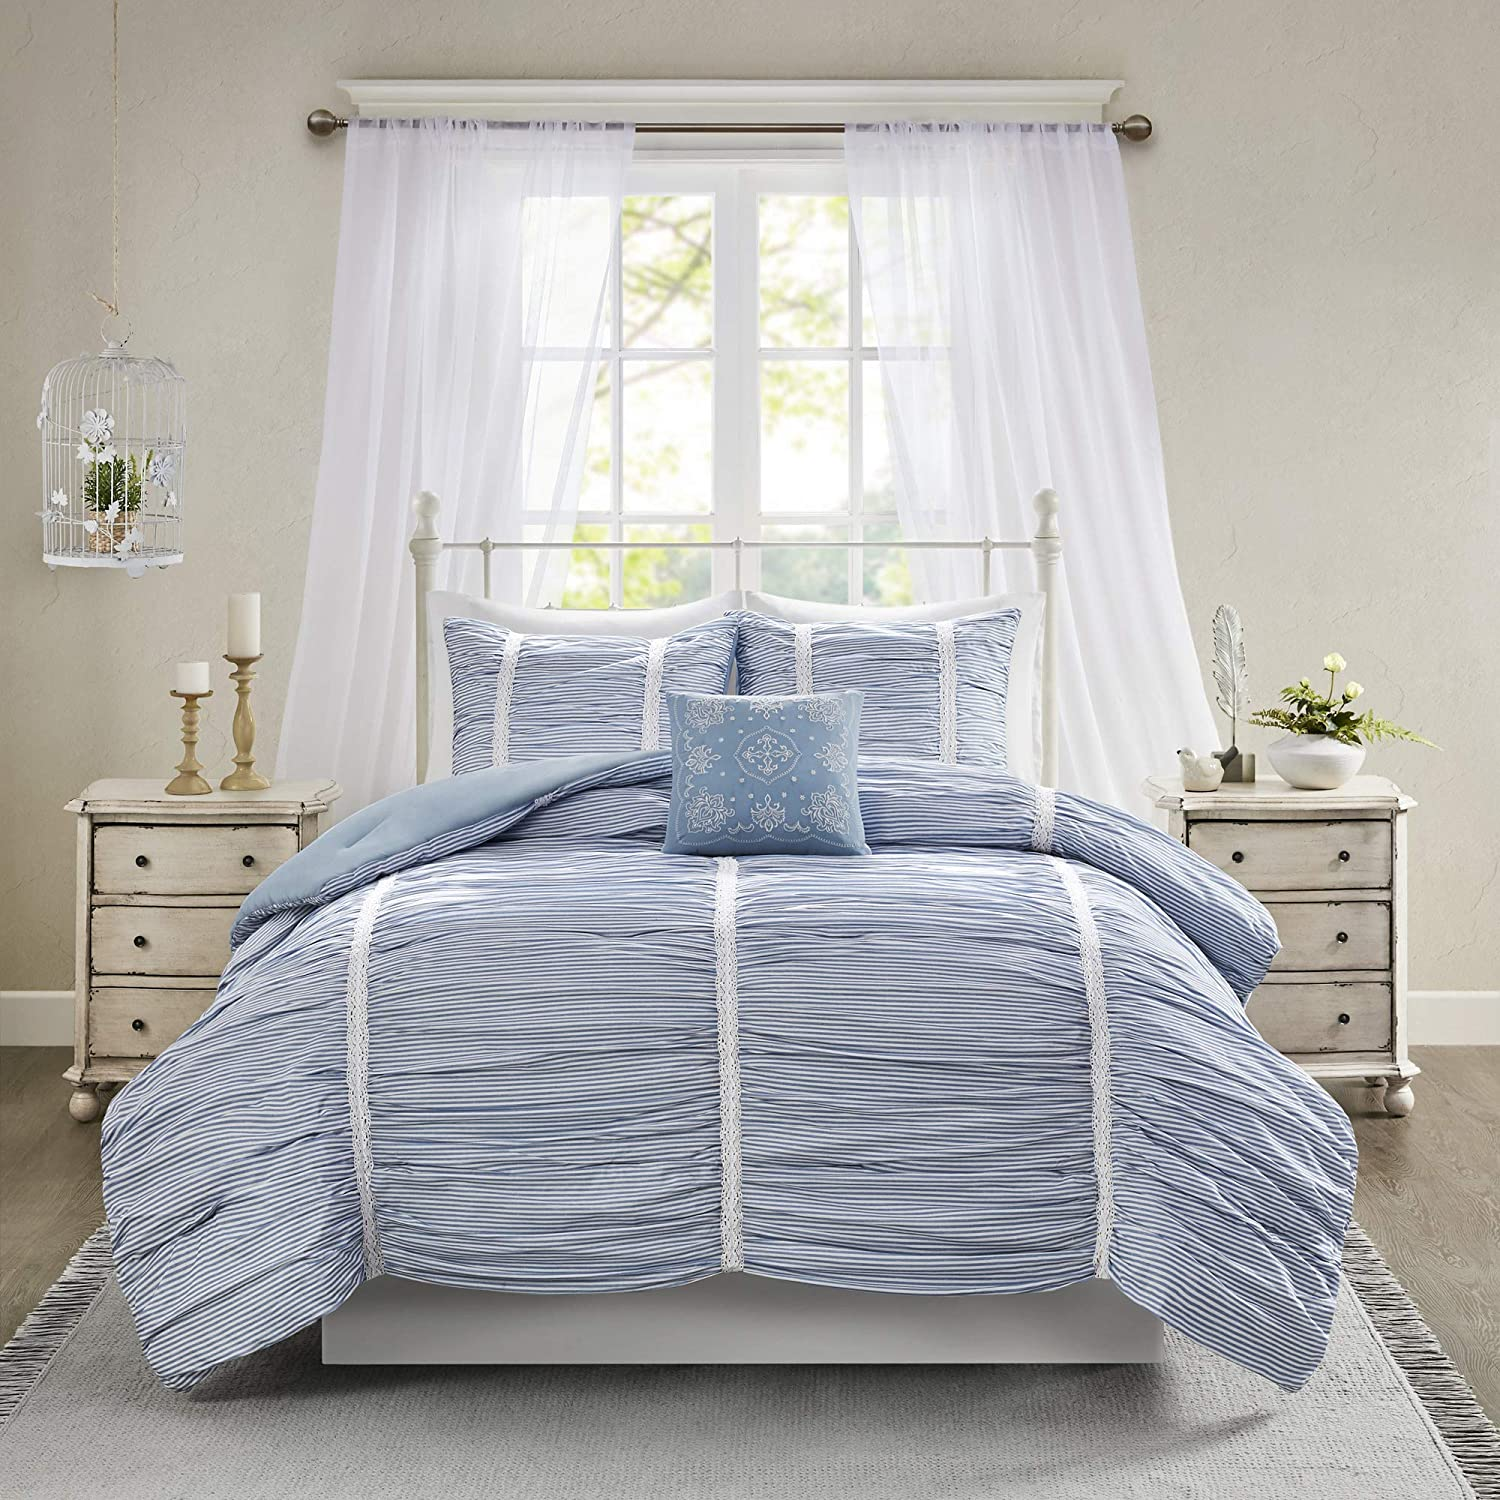 Madison Park Ana 4 Piece Comforter Cotton Printed Stripe Ruched with Lace Accent-Embroidered Pillow Shabby Chic Down Alternative Hypoallergenic All Season Bedding-Set, Full/Queen, Blue